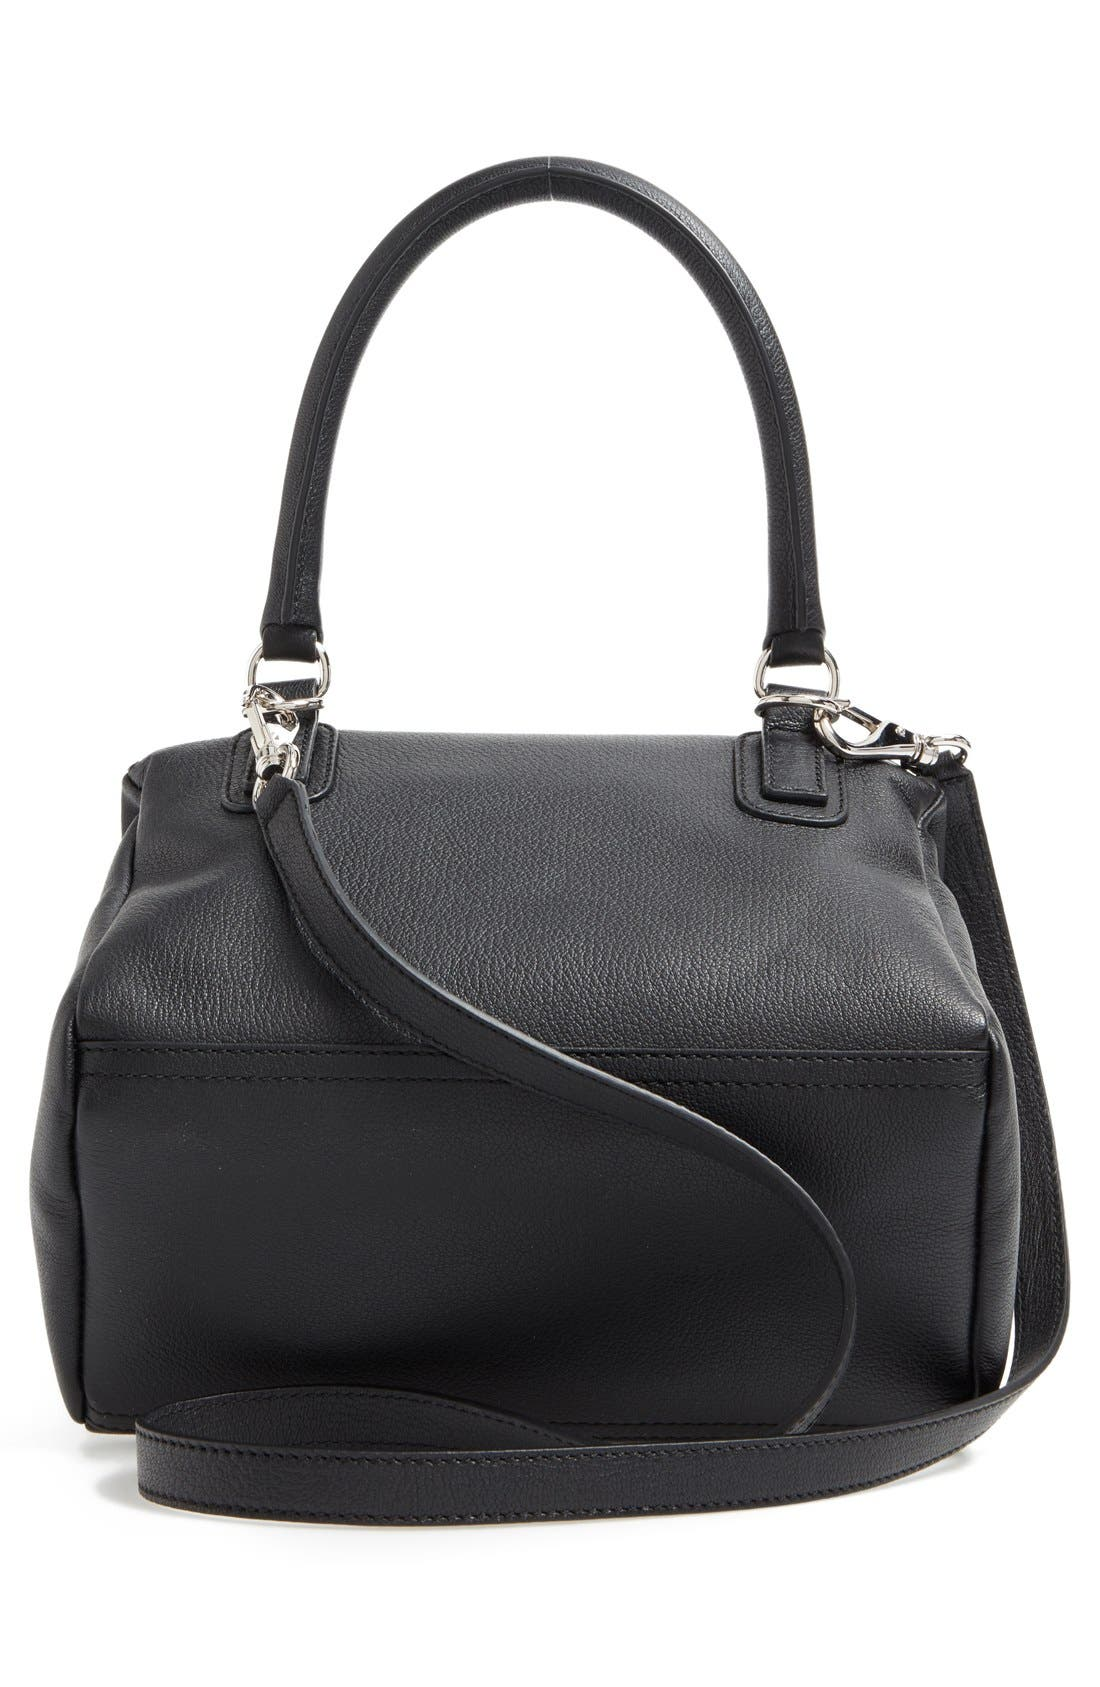 Alternate Image 3  - Givenchy 'Small Pandora' Leather Satchel